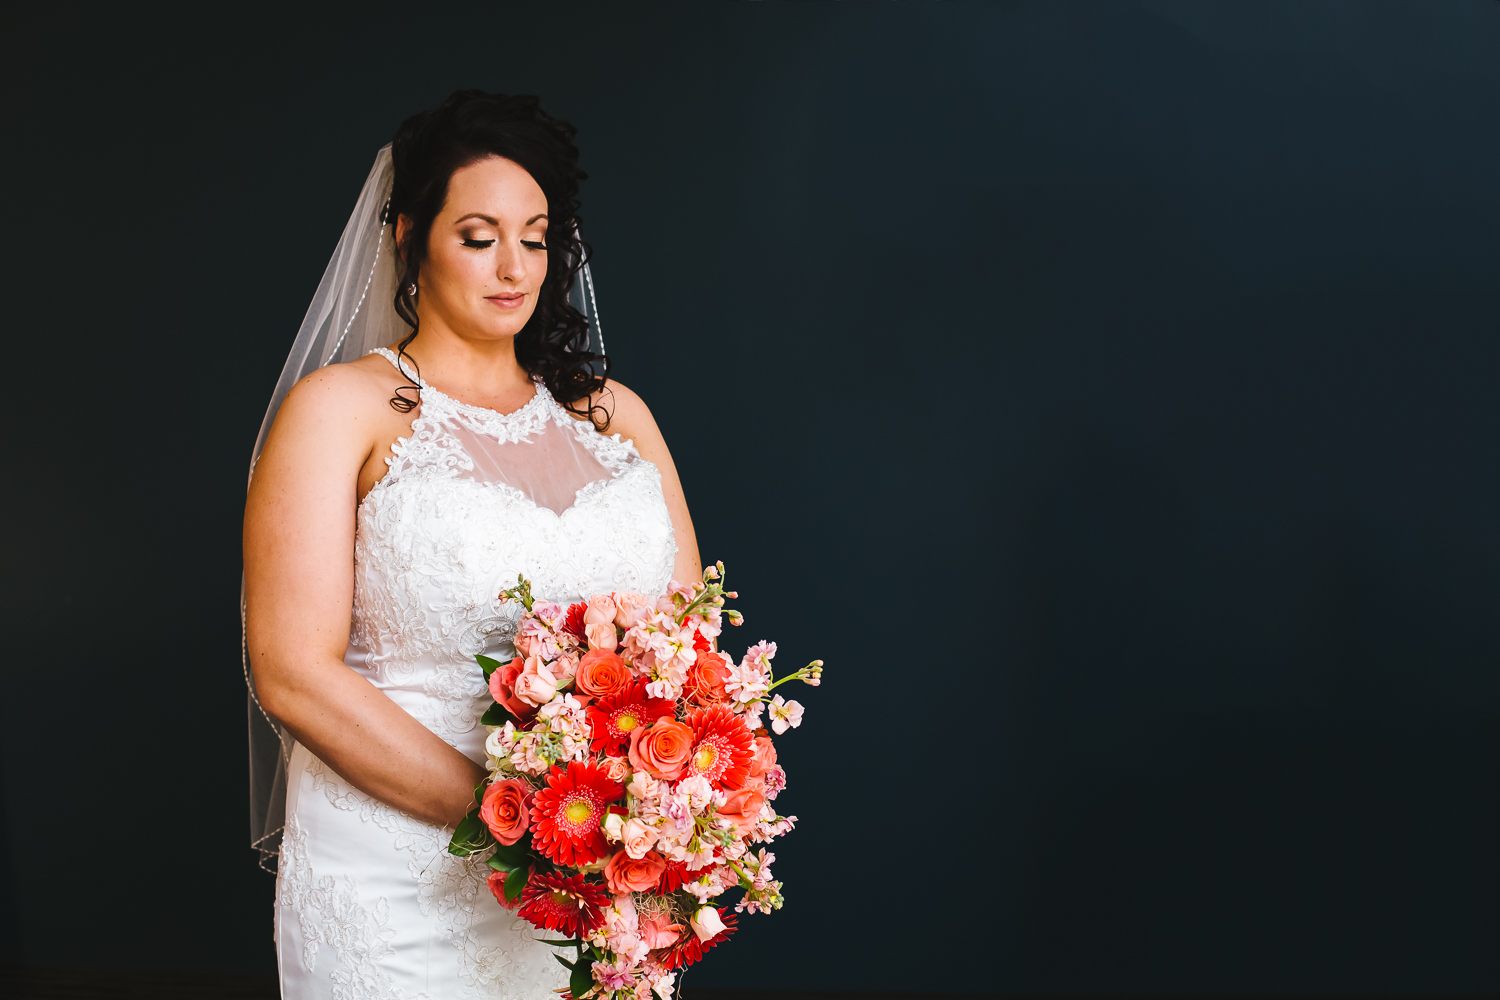 Bride looks down at giant bouquet of coral flowers. She is in a white gown. Her hair has curls. She has a veil on.